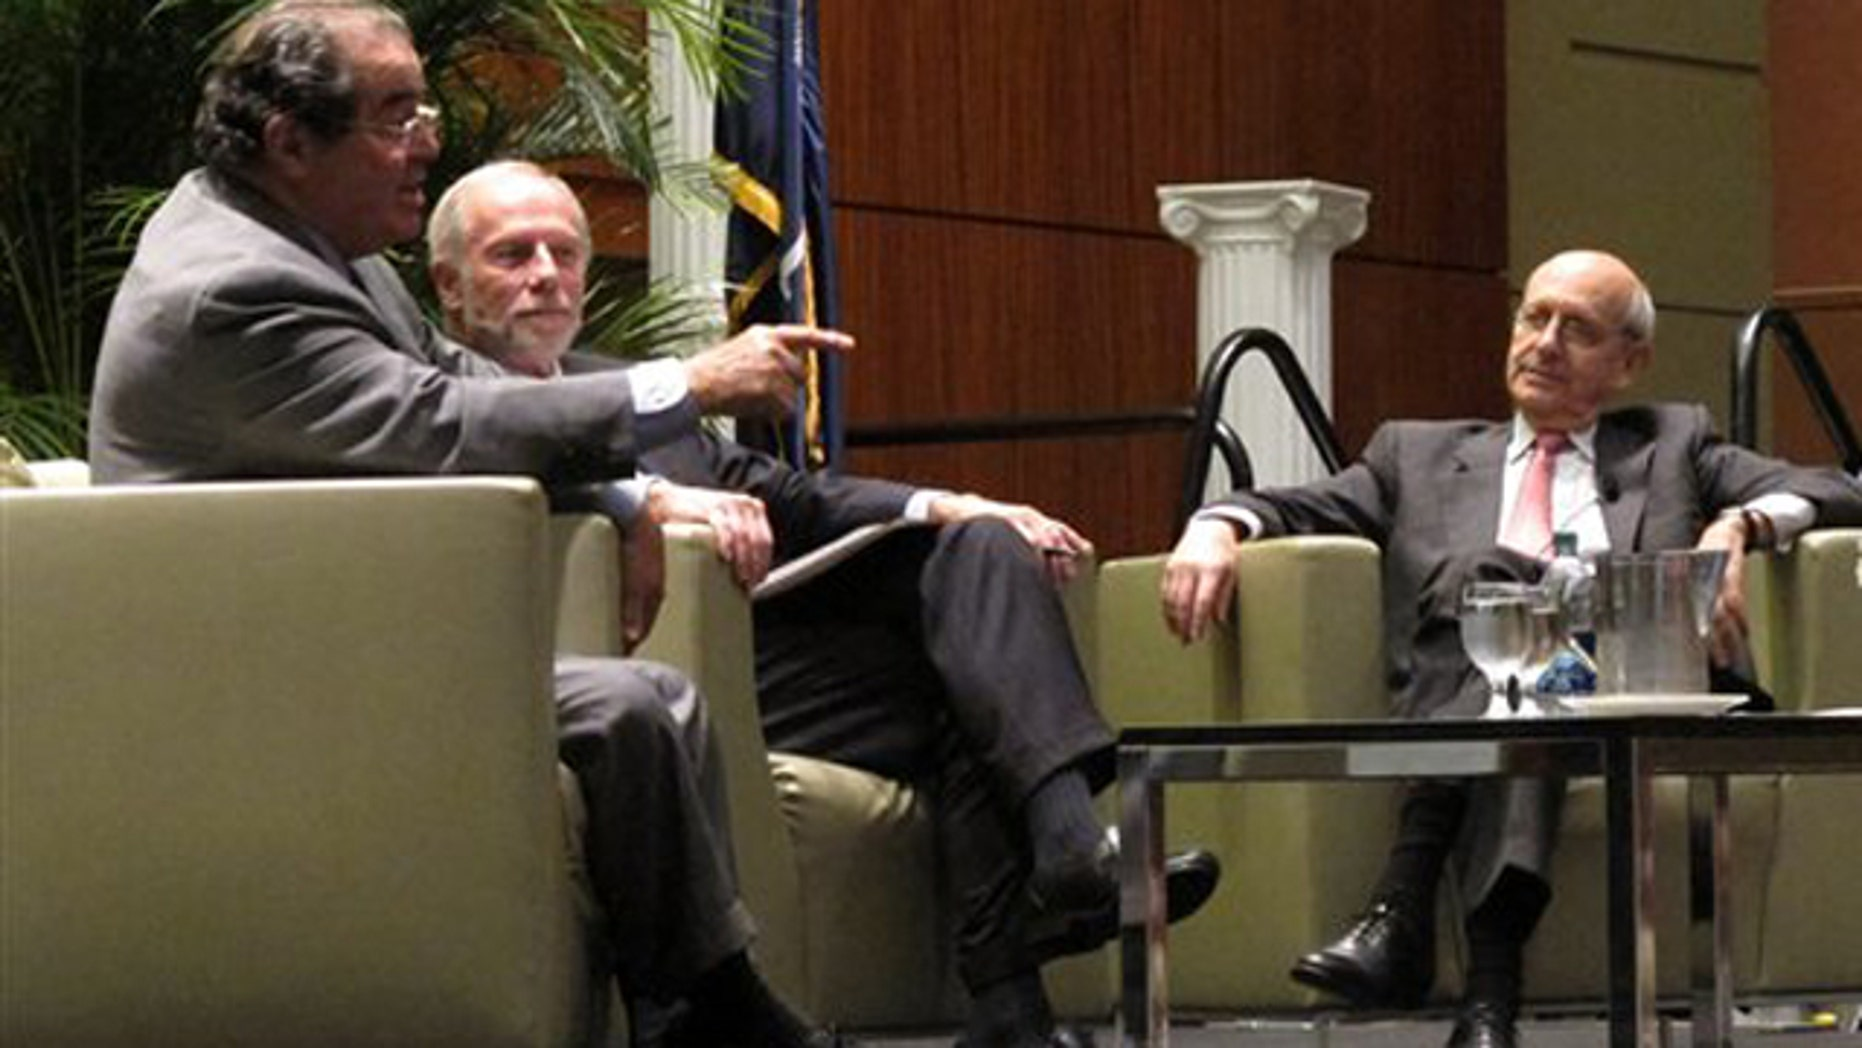 Jan. 21, 2012: U.S. Supreme Court Justices Antonin Scalia, left, and Stephen Breyer, right, talk to moderator Charles Bierbauer, center, at a debate before the South Carolina Bar in Columbia, S.C.